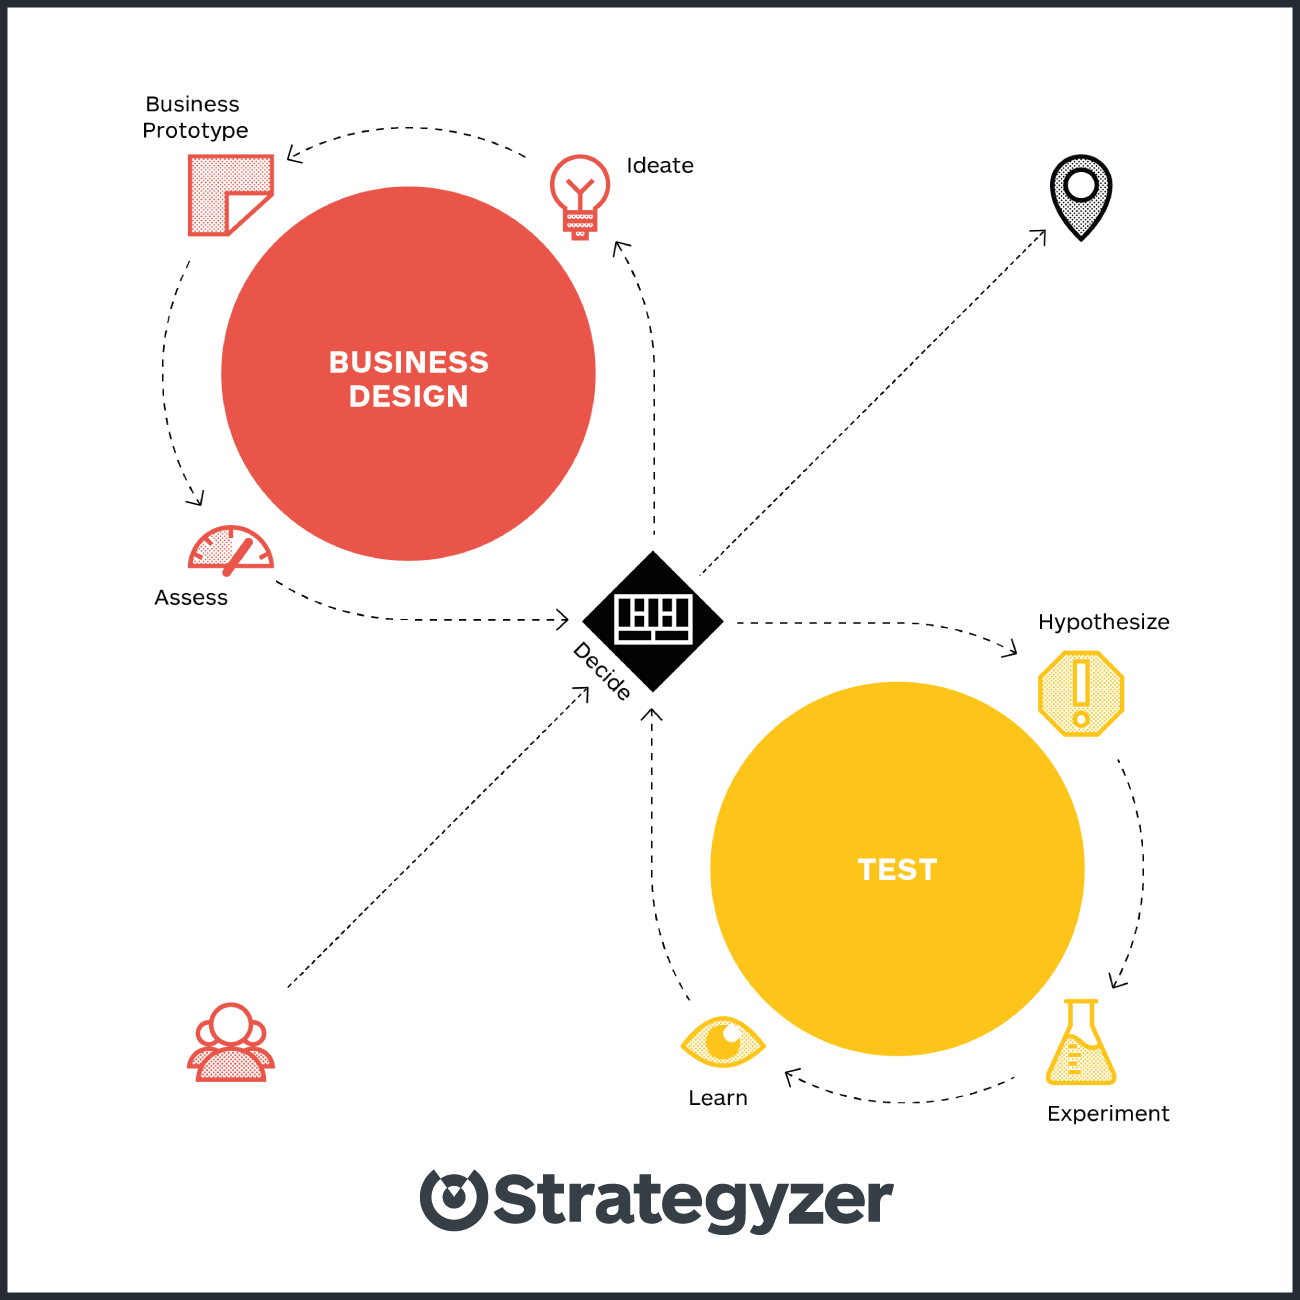 strategyzer-blog-book-visual-3